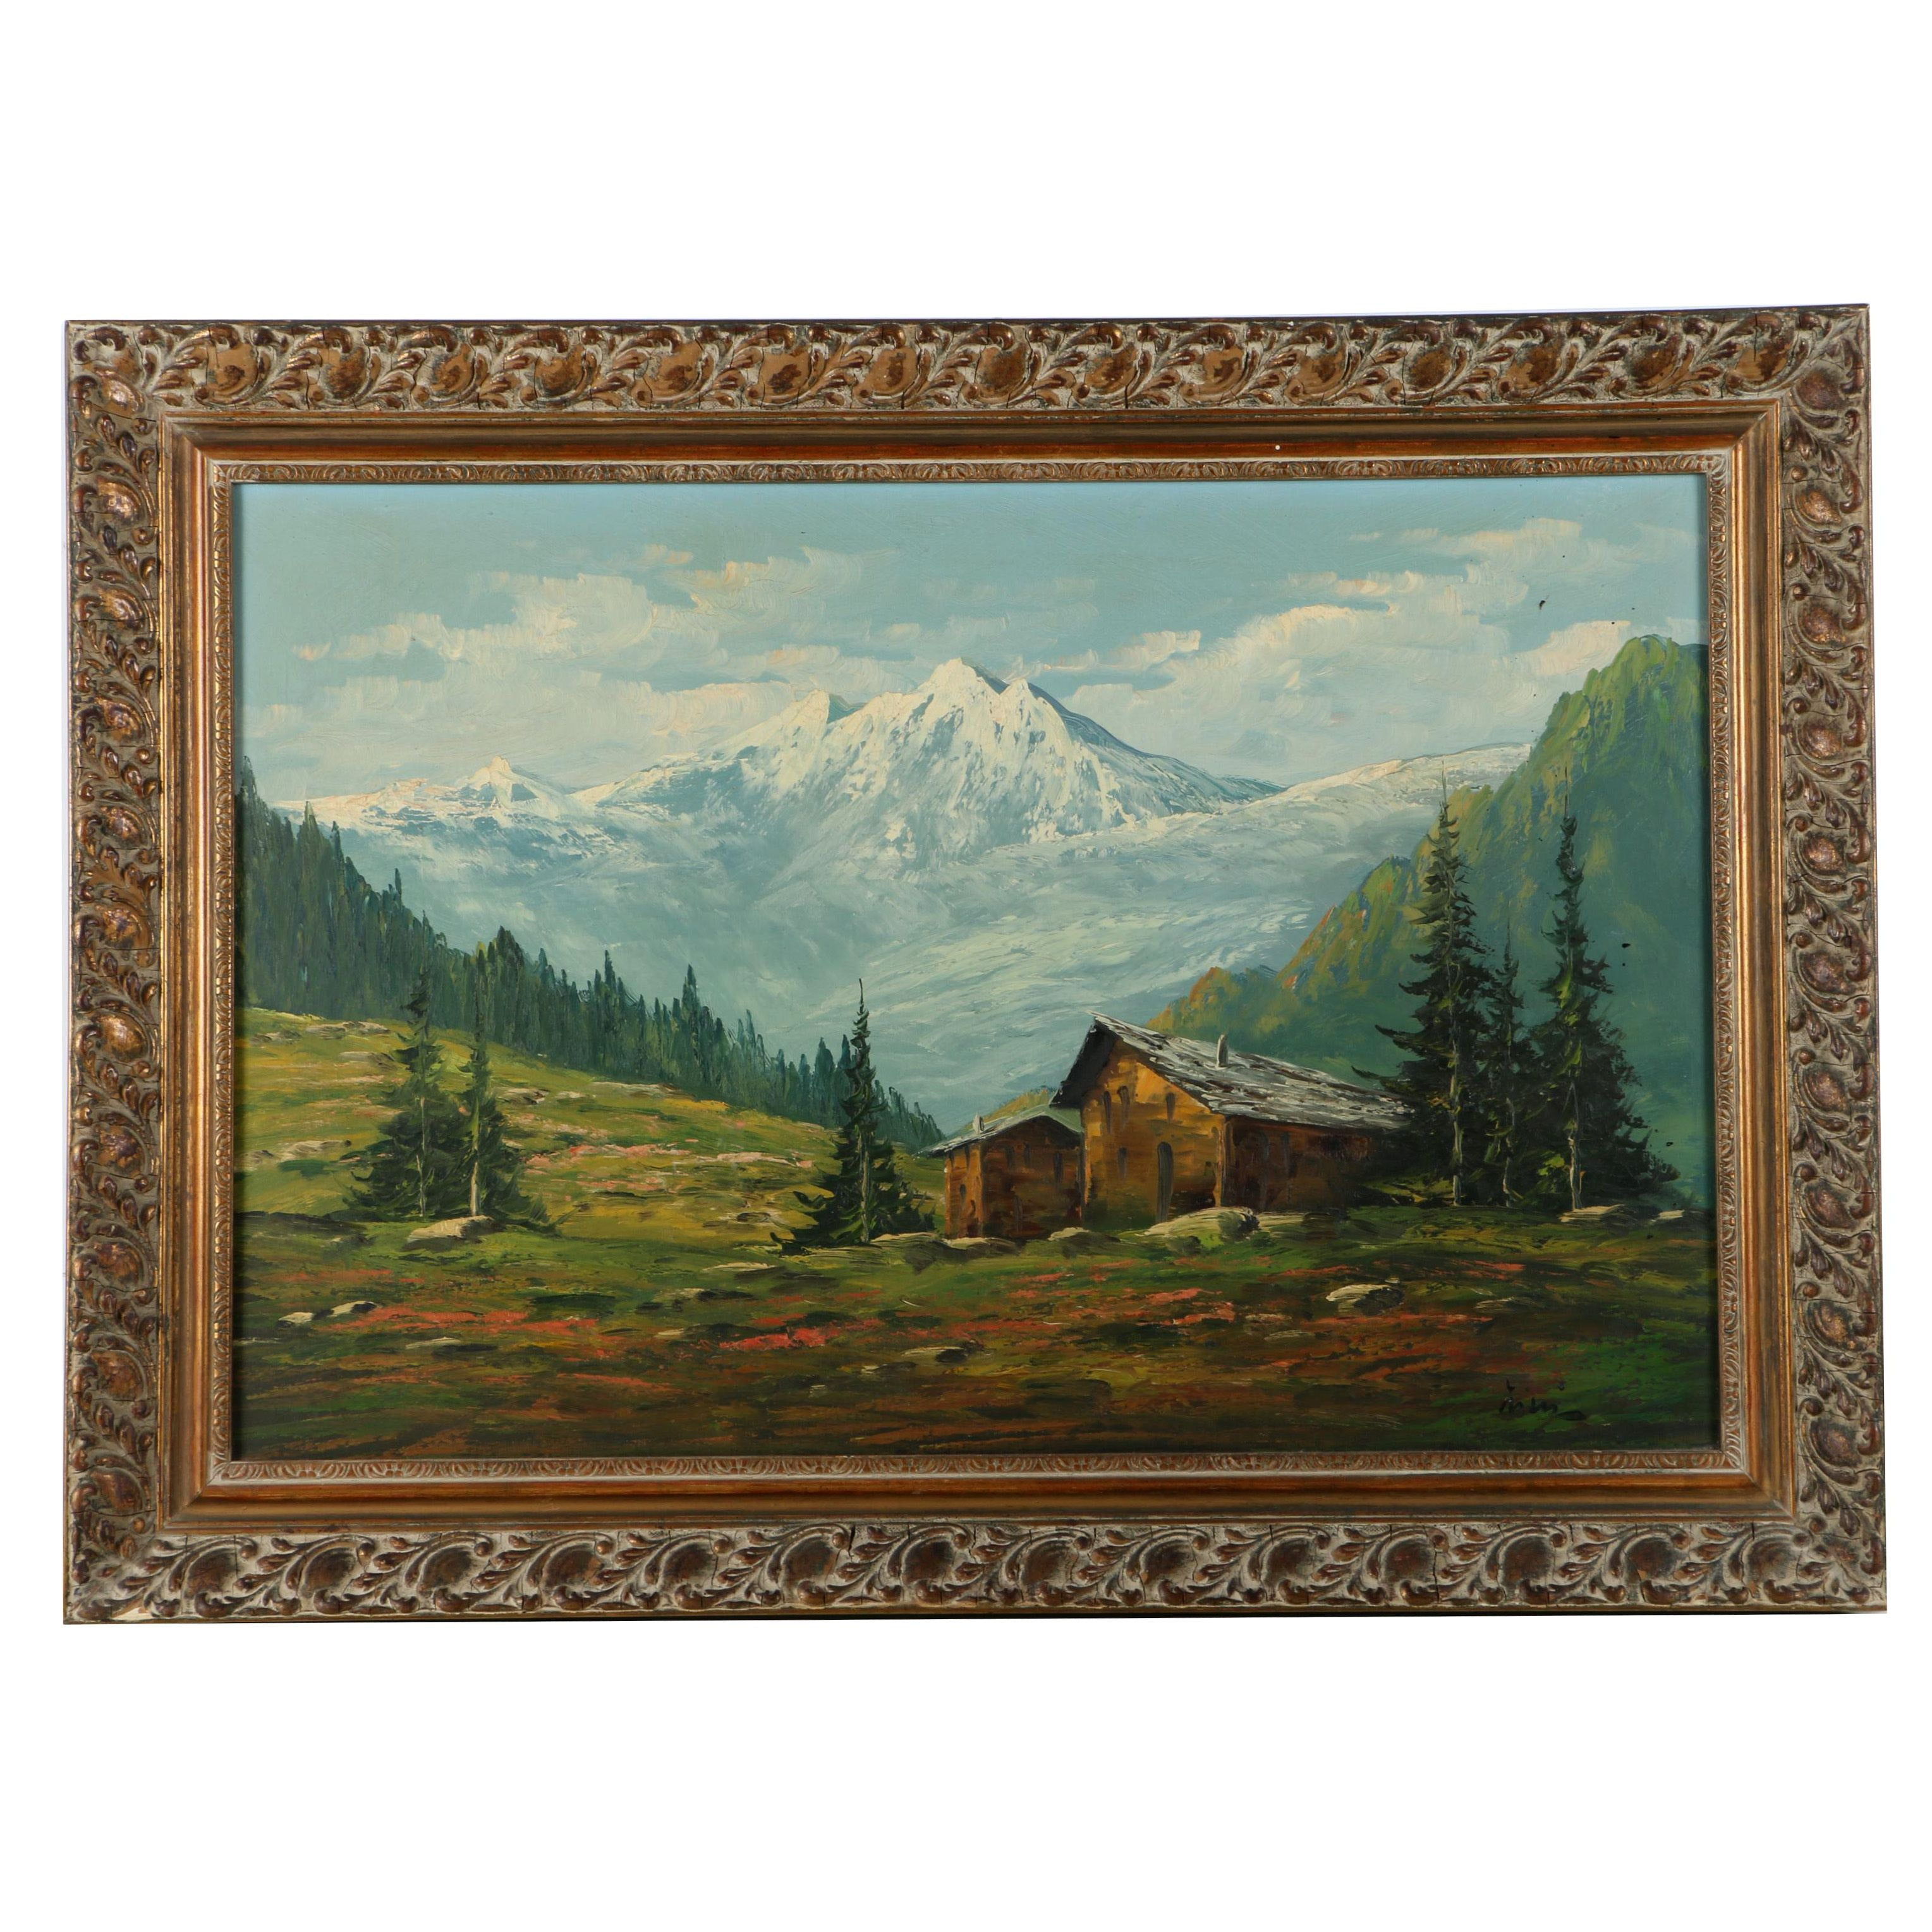 Oil Painting on Canvas of a Mountain Landscape